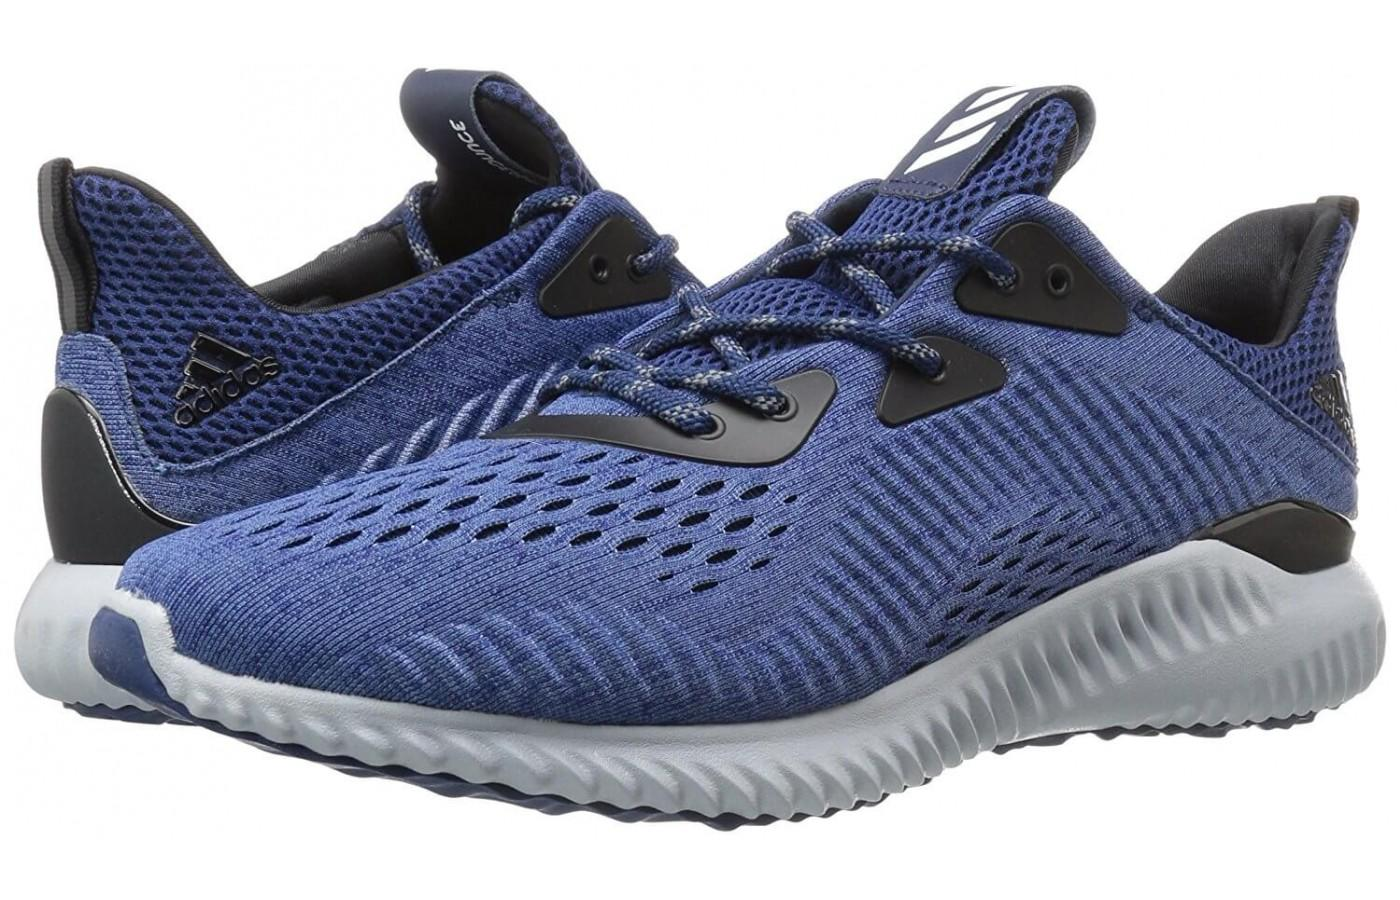 a928b2037 Adidas Alphabounce EM Review - Buy or Not in May 2019